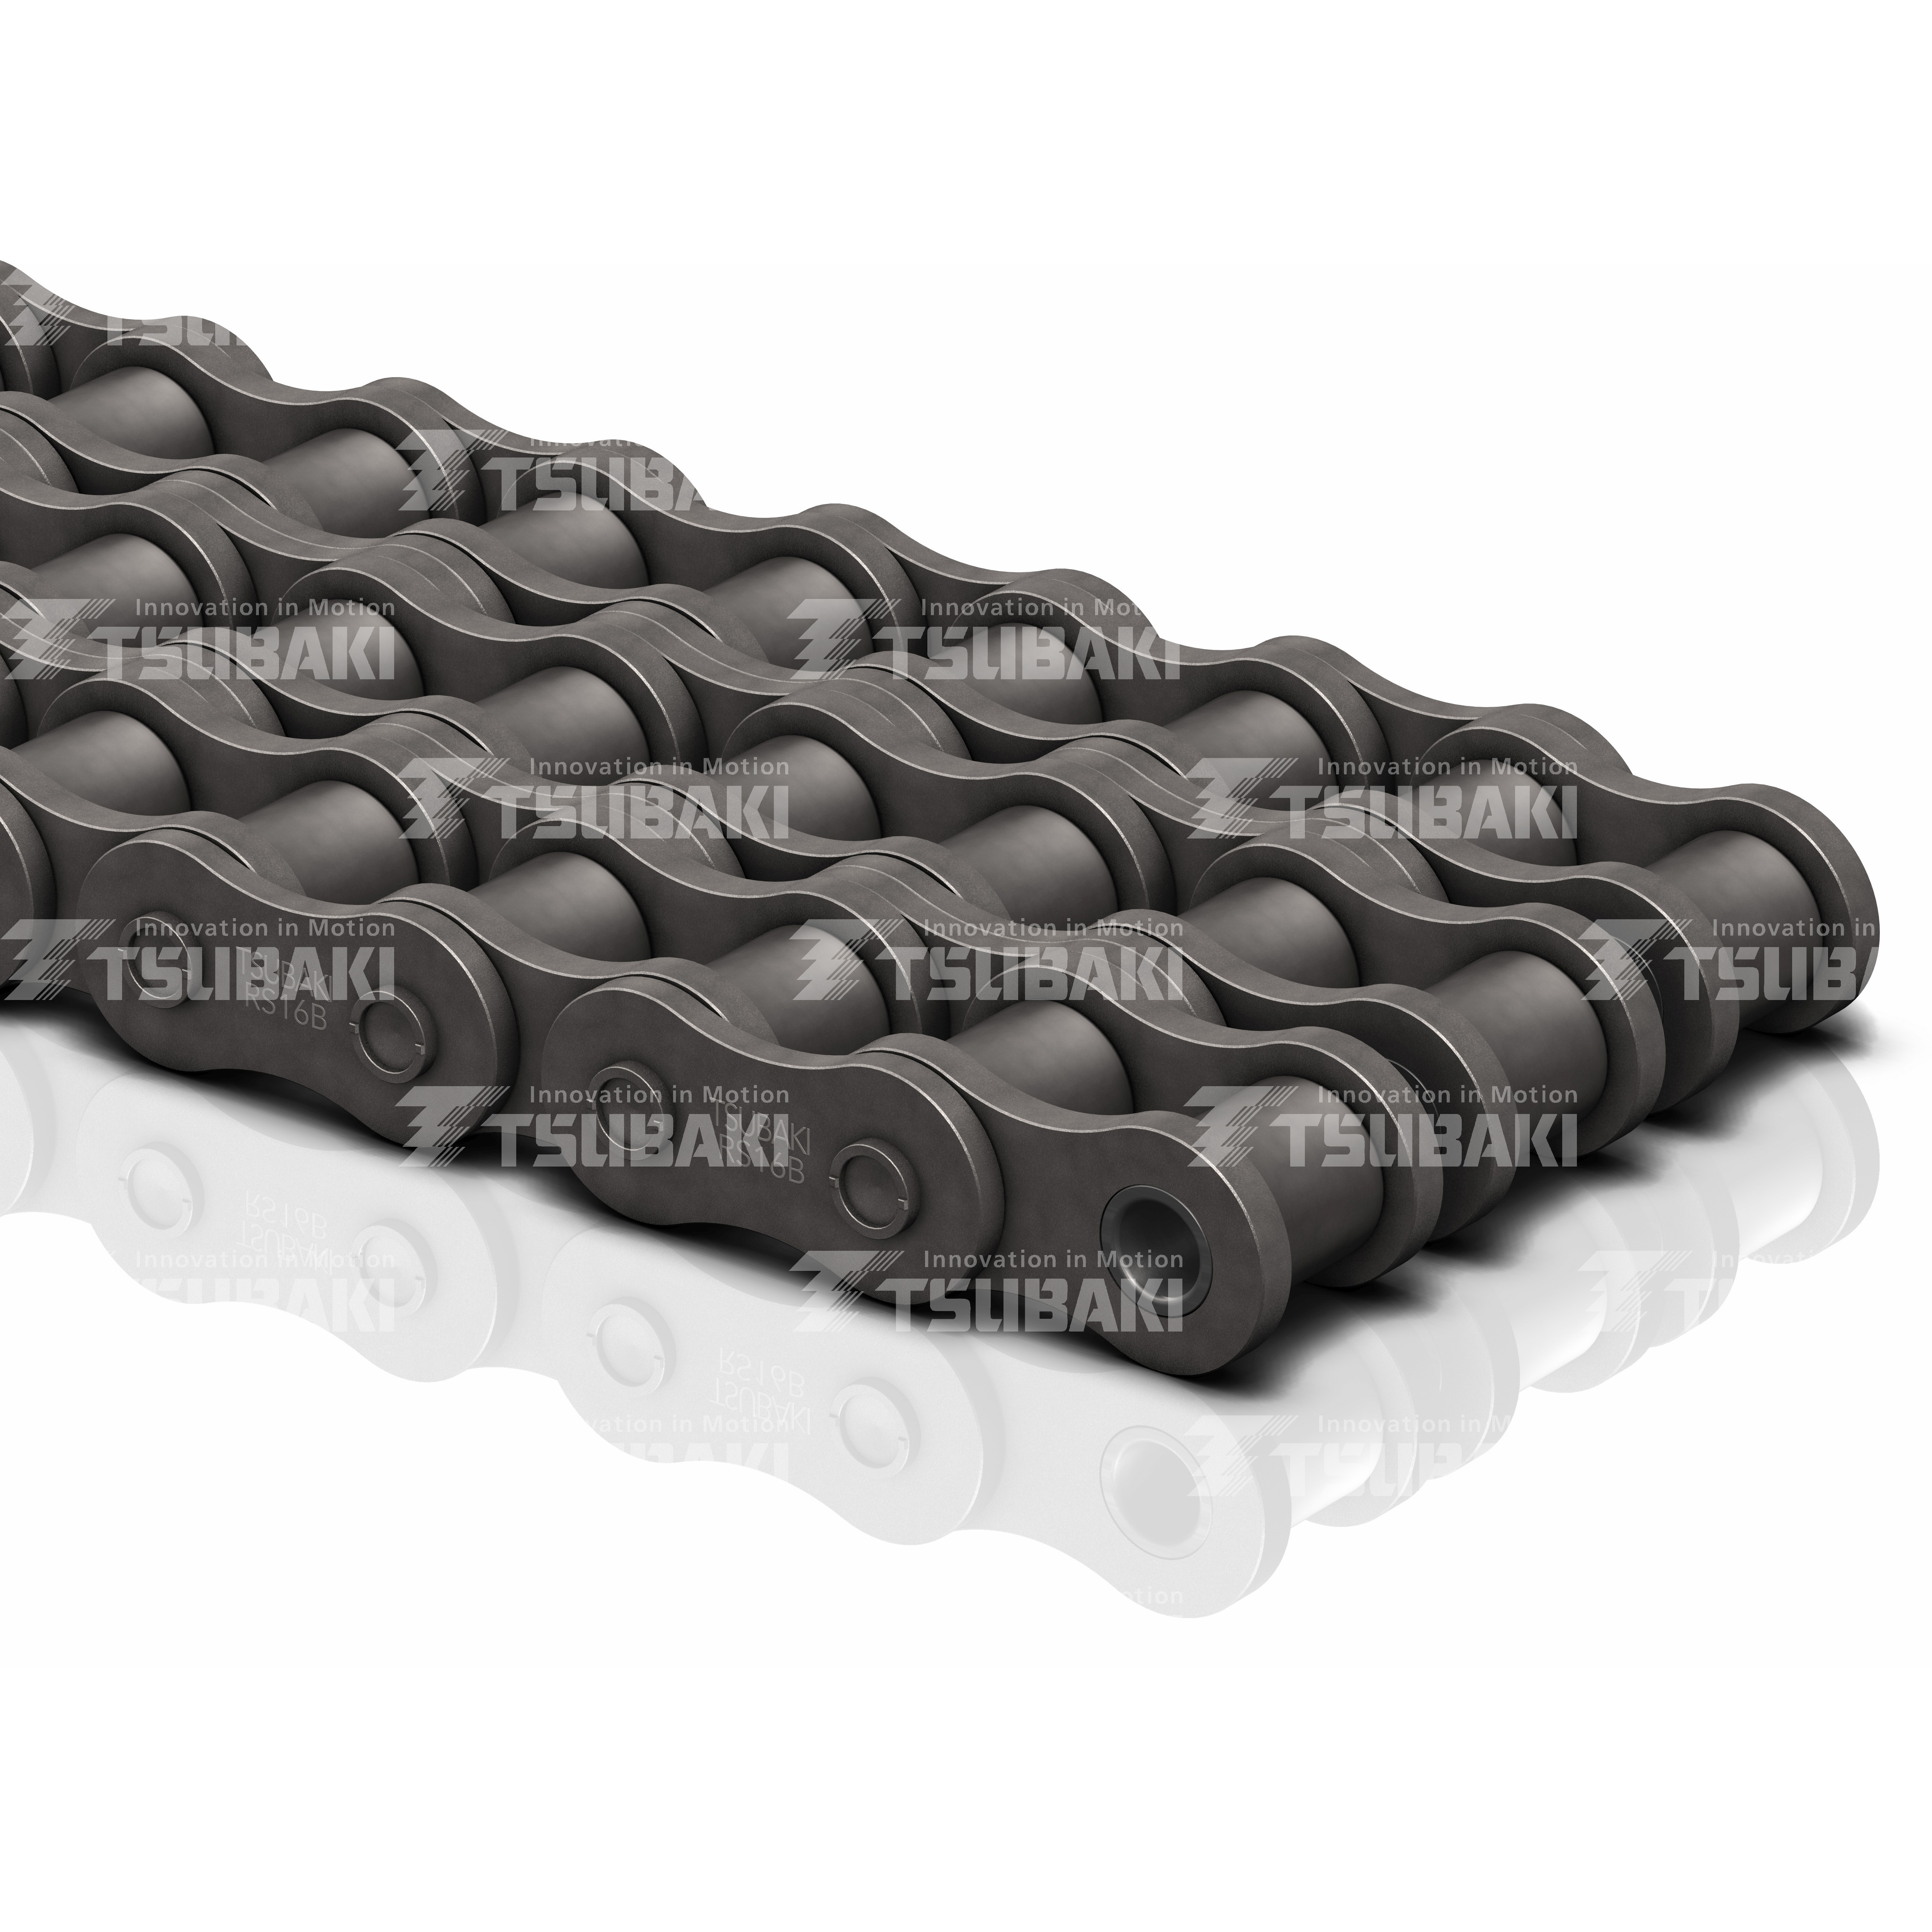 RS12B Triplex Chain 5 Metre Box